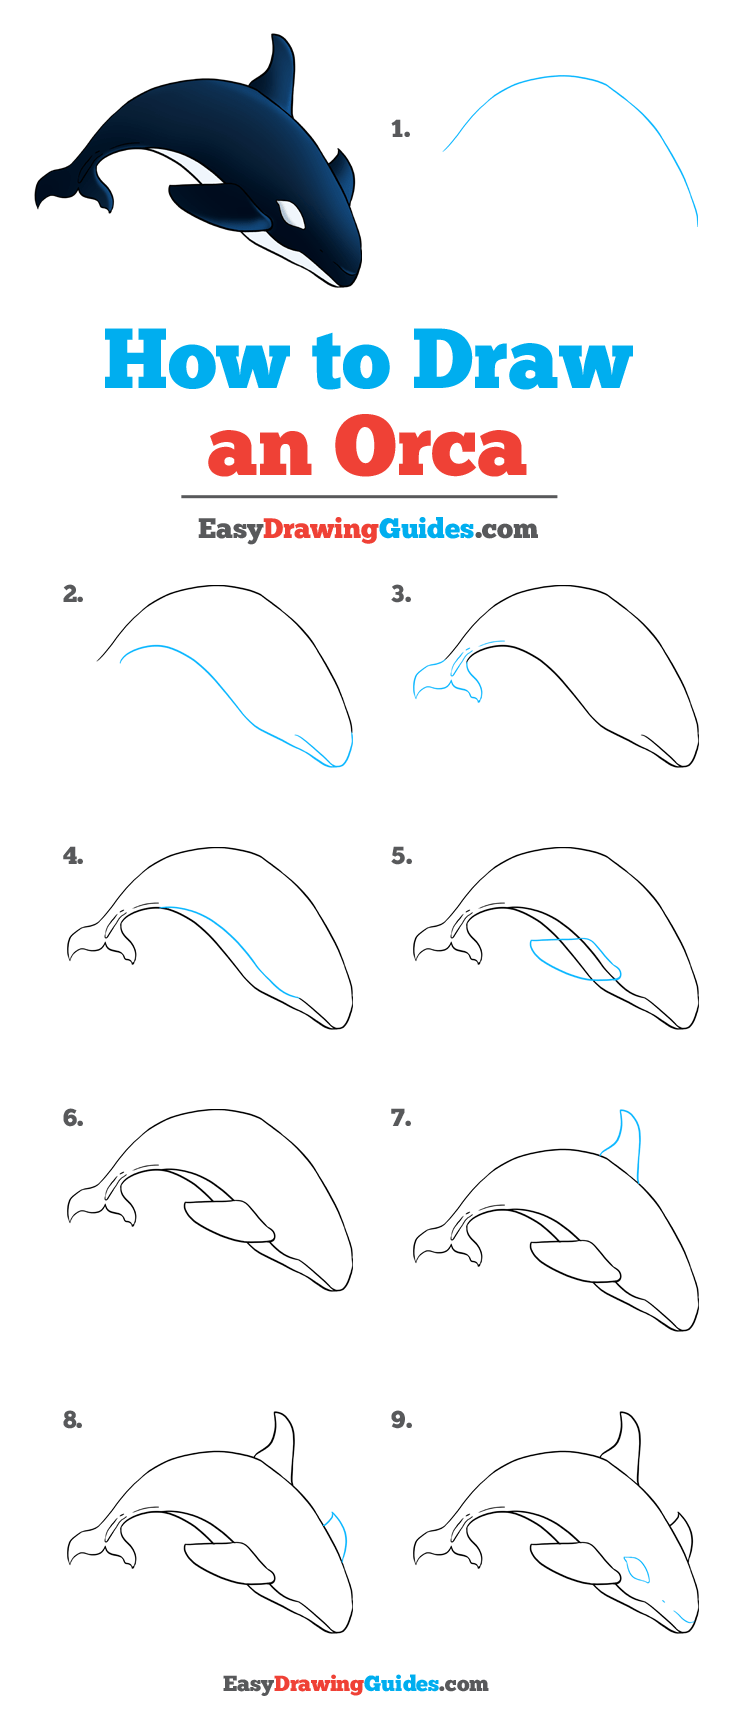 How to Draw Orca